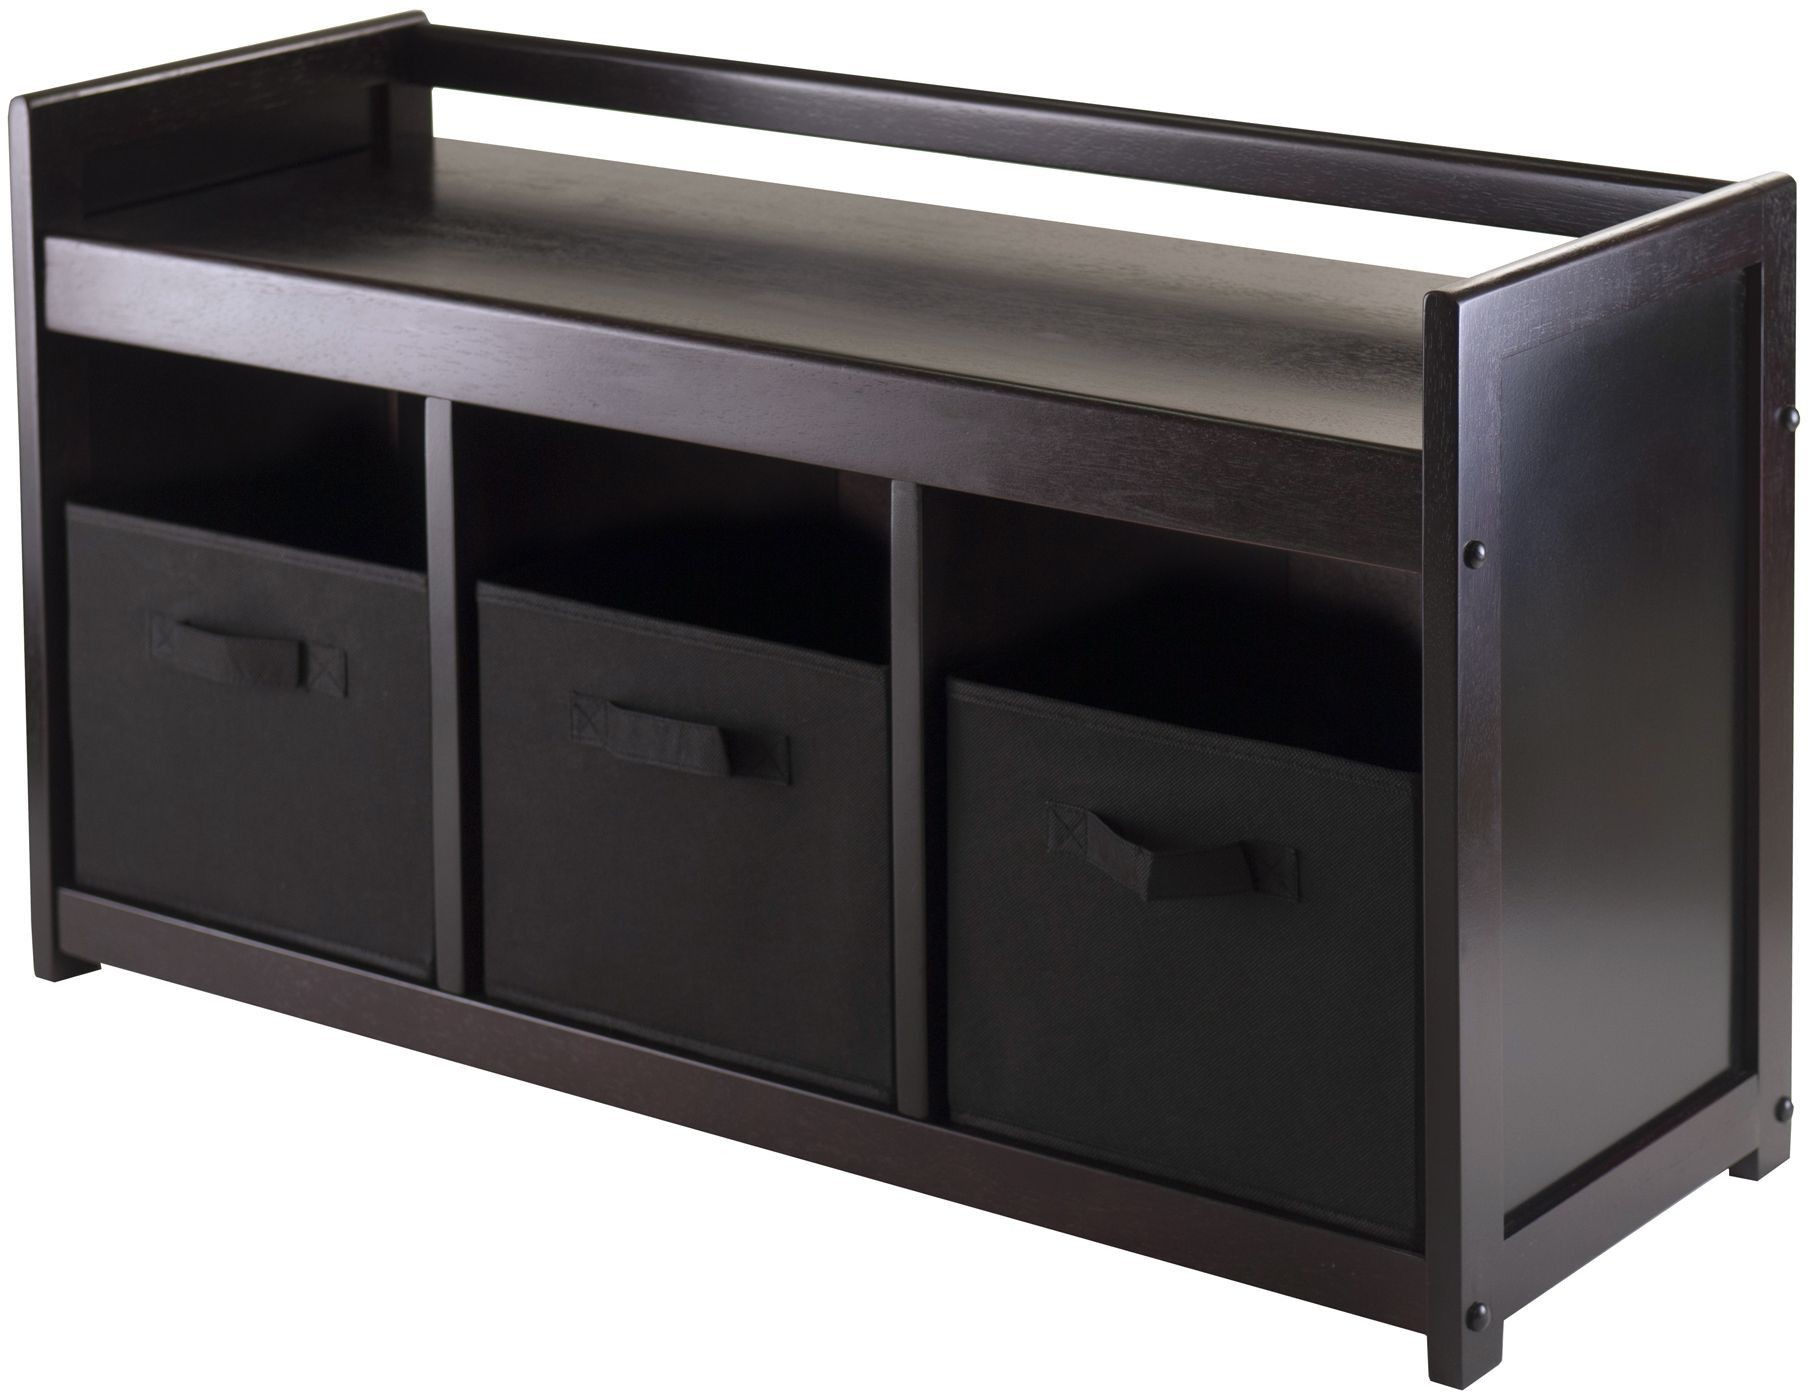 Addison Black Storage Bench With 3 Foldable Baskets From